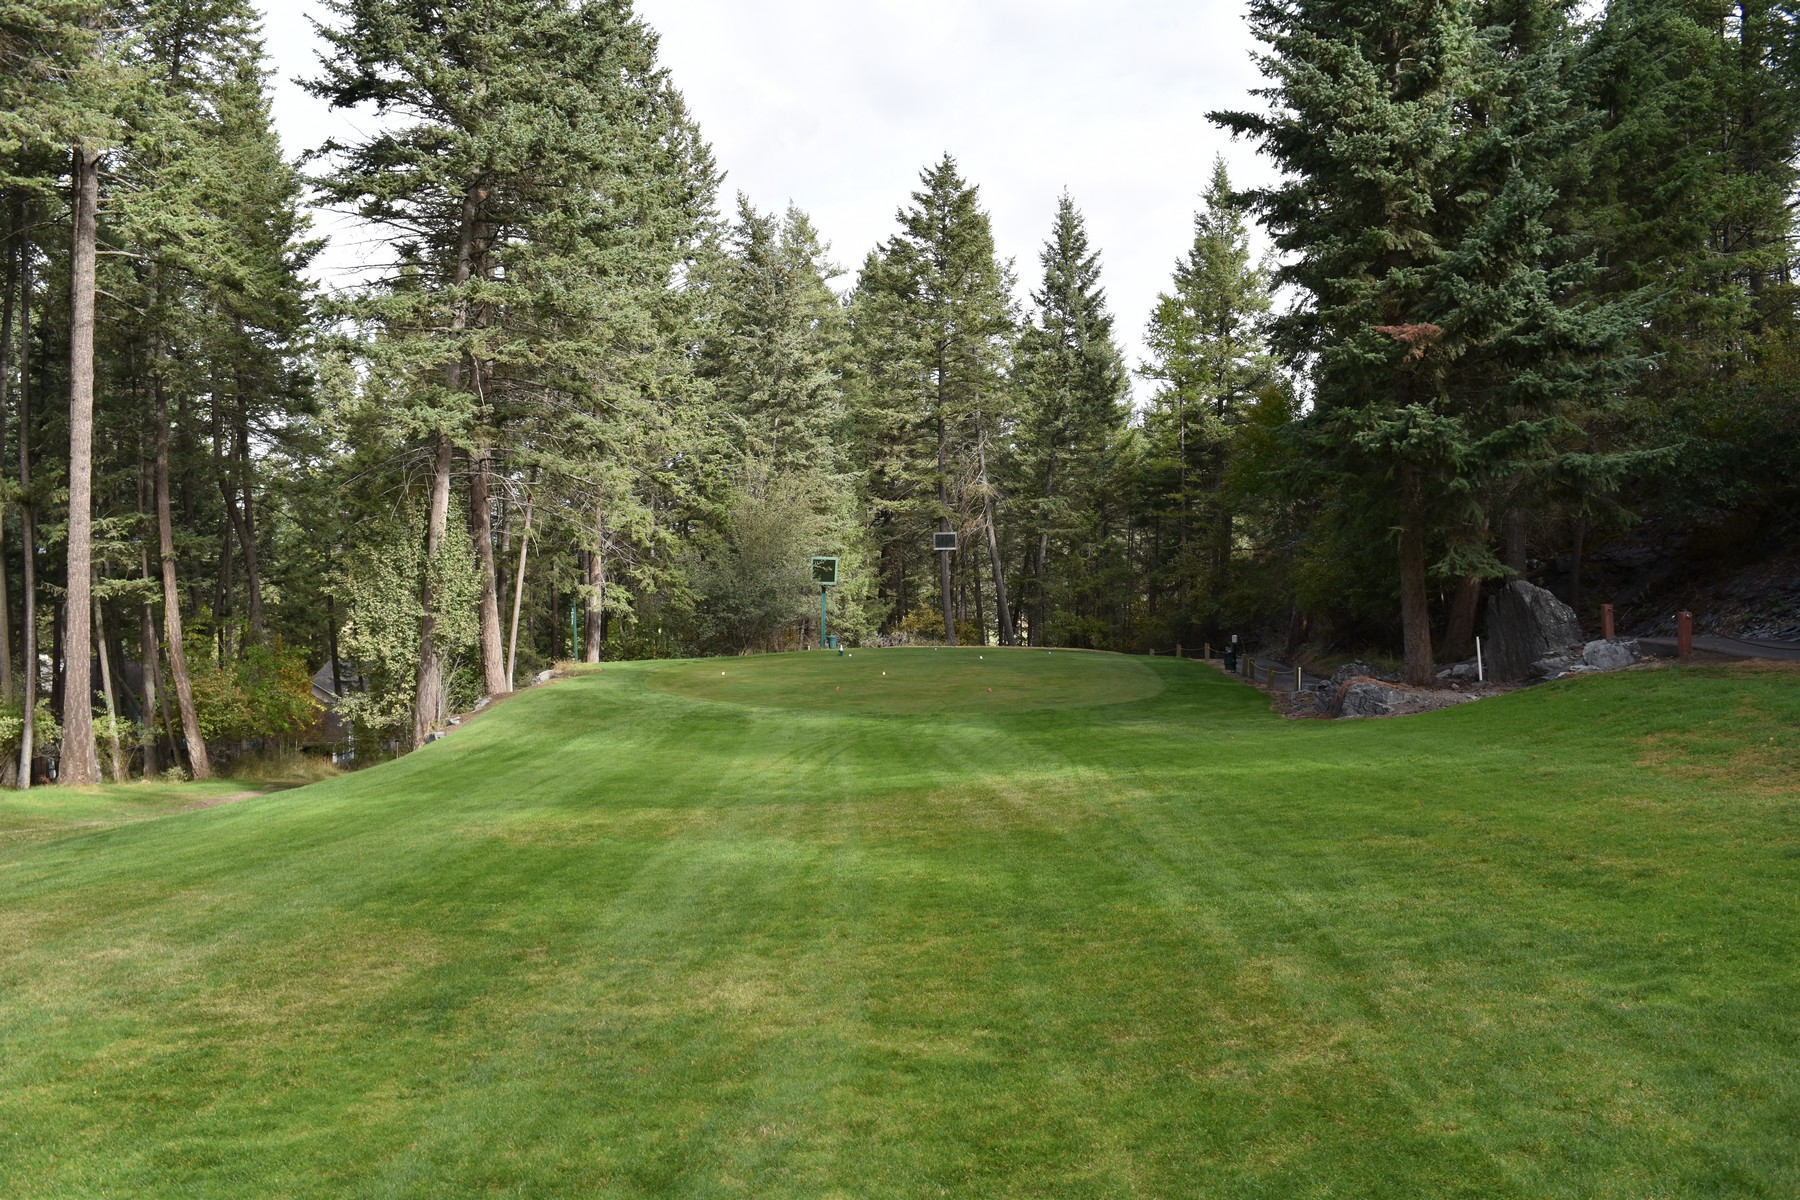 Additional photo for property listing at 179 A Eagle Bend Dr , Bigfork, MT 59911 179 A  Eagle Bend Dr Bigfork, Montana 59911 United States